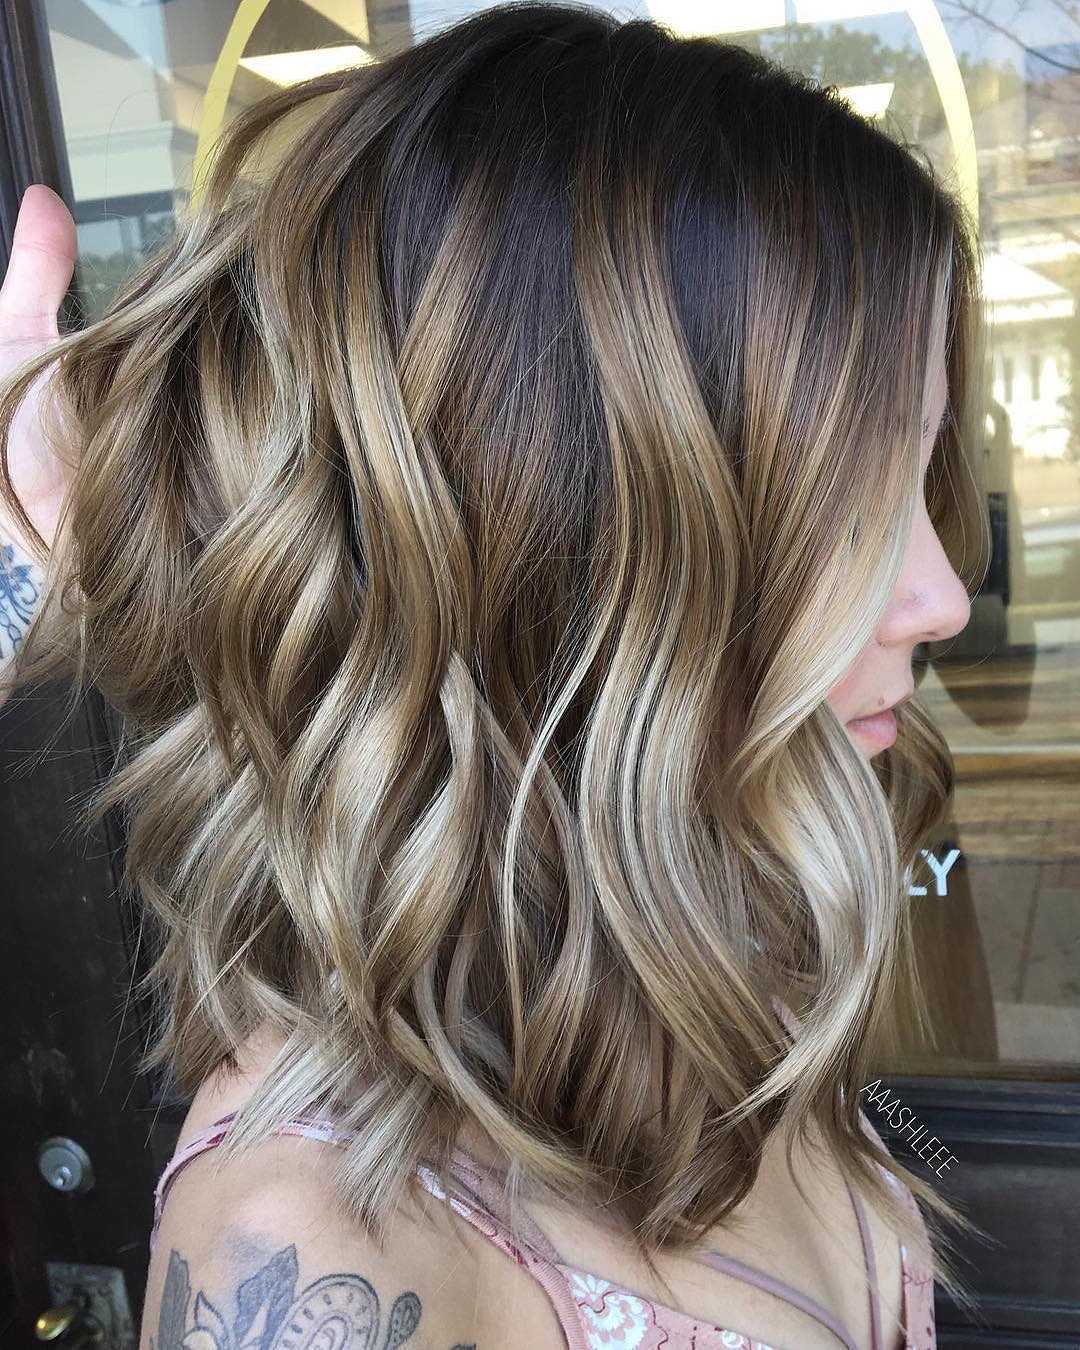 10 Ombre Balayage Hairstyles For Medium Length Hair, Hair Color 2019 In 2018 Balayage Hairstyles For Long Layers (Gallery 10 of 20)